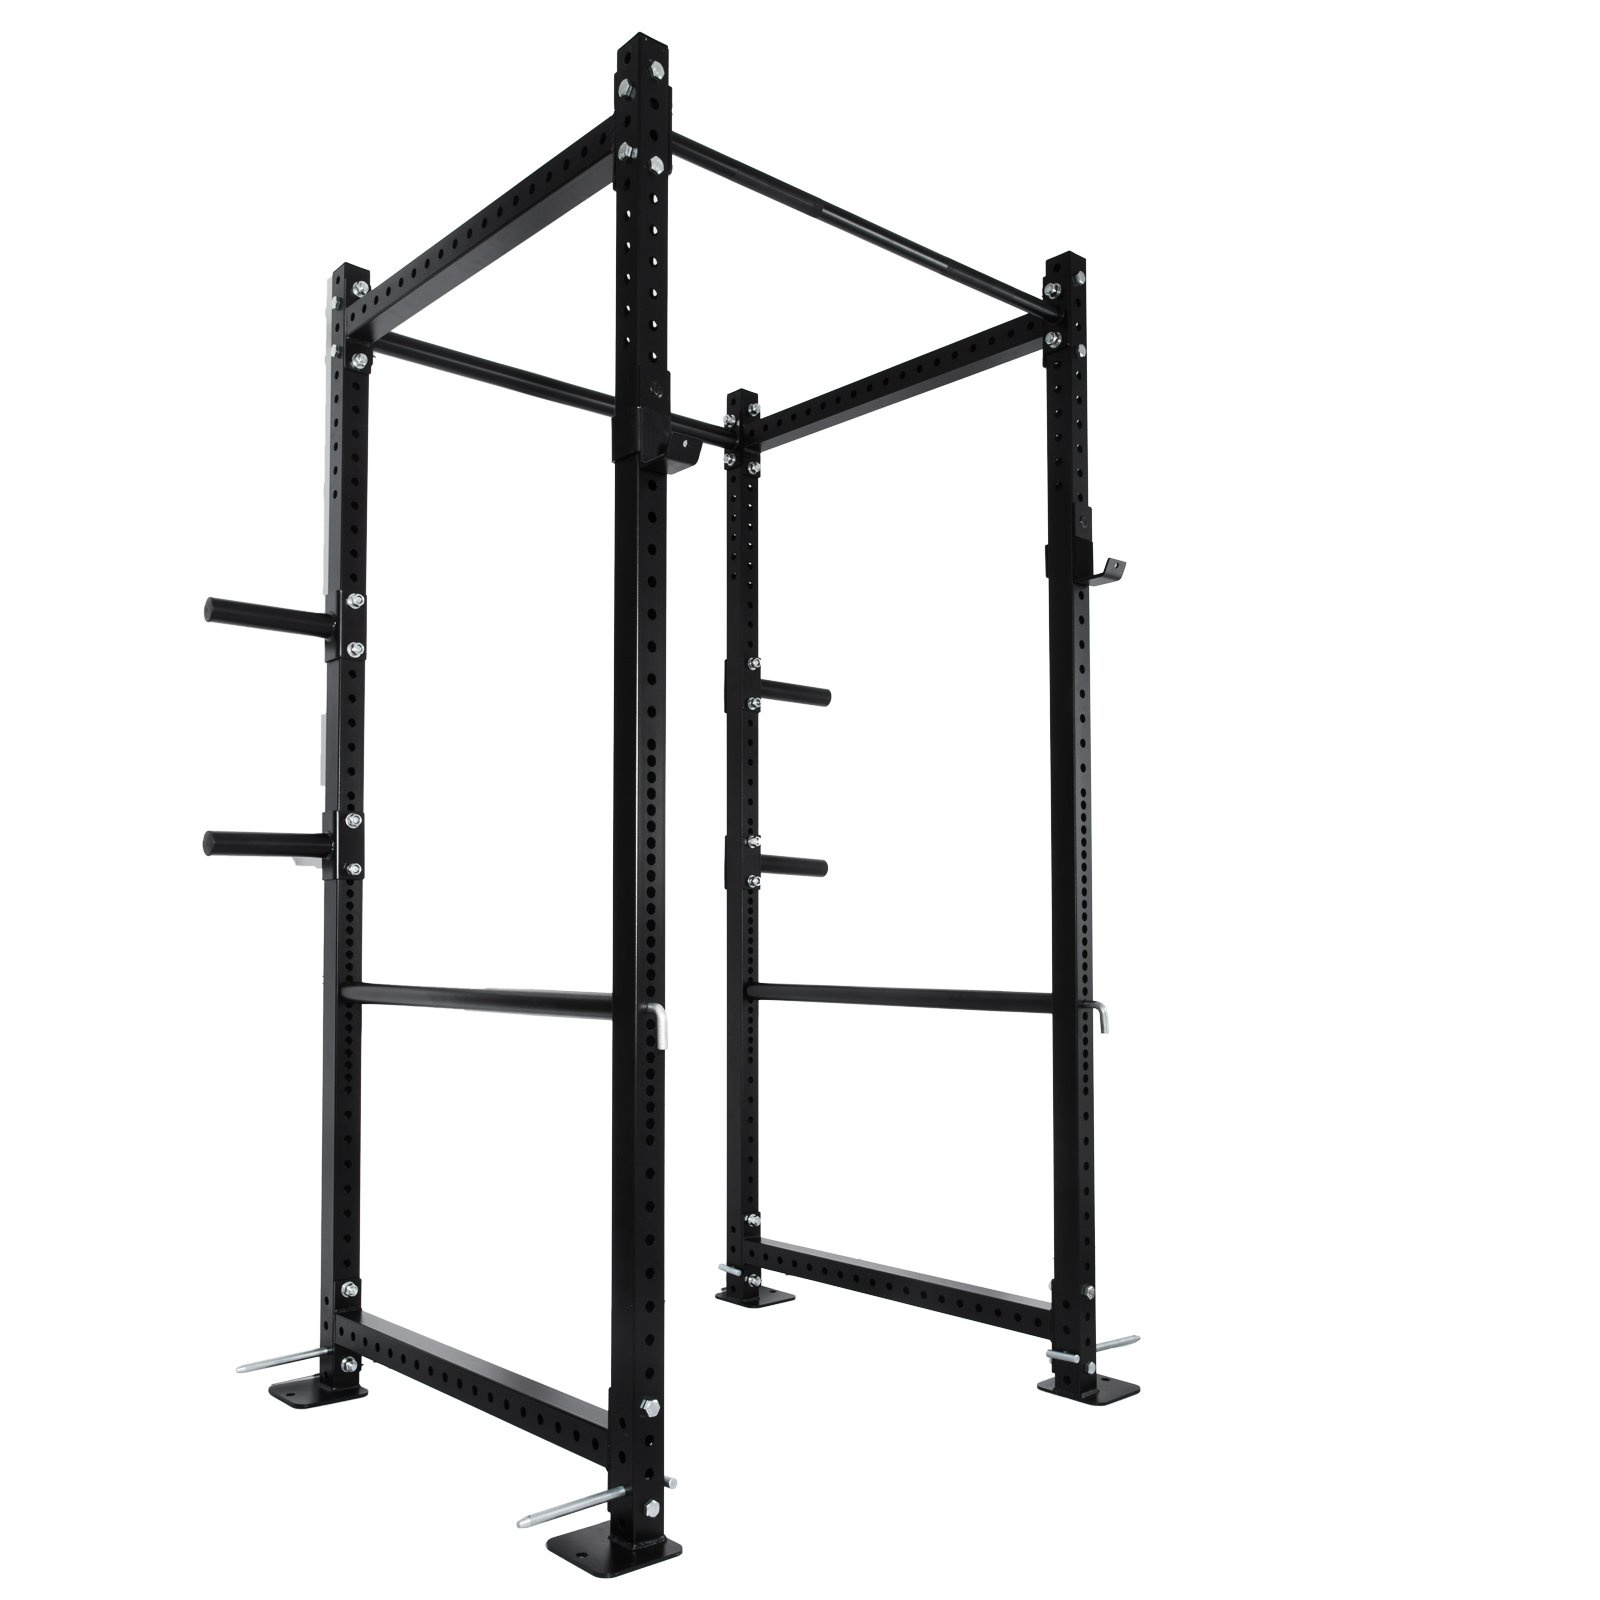 Popsport Deep Squat Rack Series Power Rack Squat Barbell Cage Bench Stand Heavy Duty Multi-Grip Chin-Up Fitness Power Rock for Home Gym (T-3 Series 82'') by Popsport